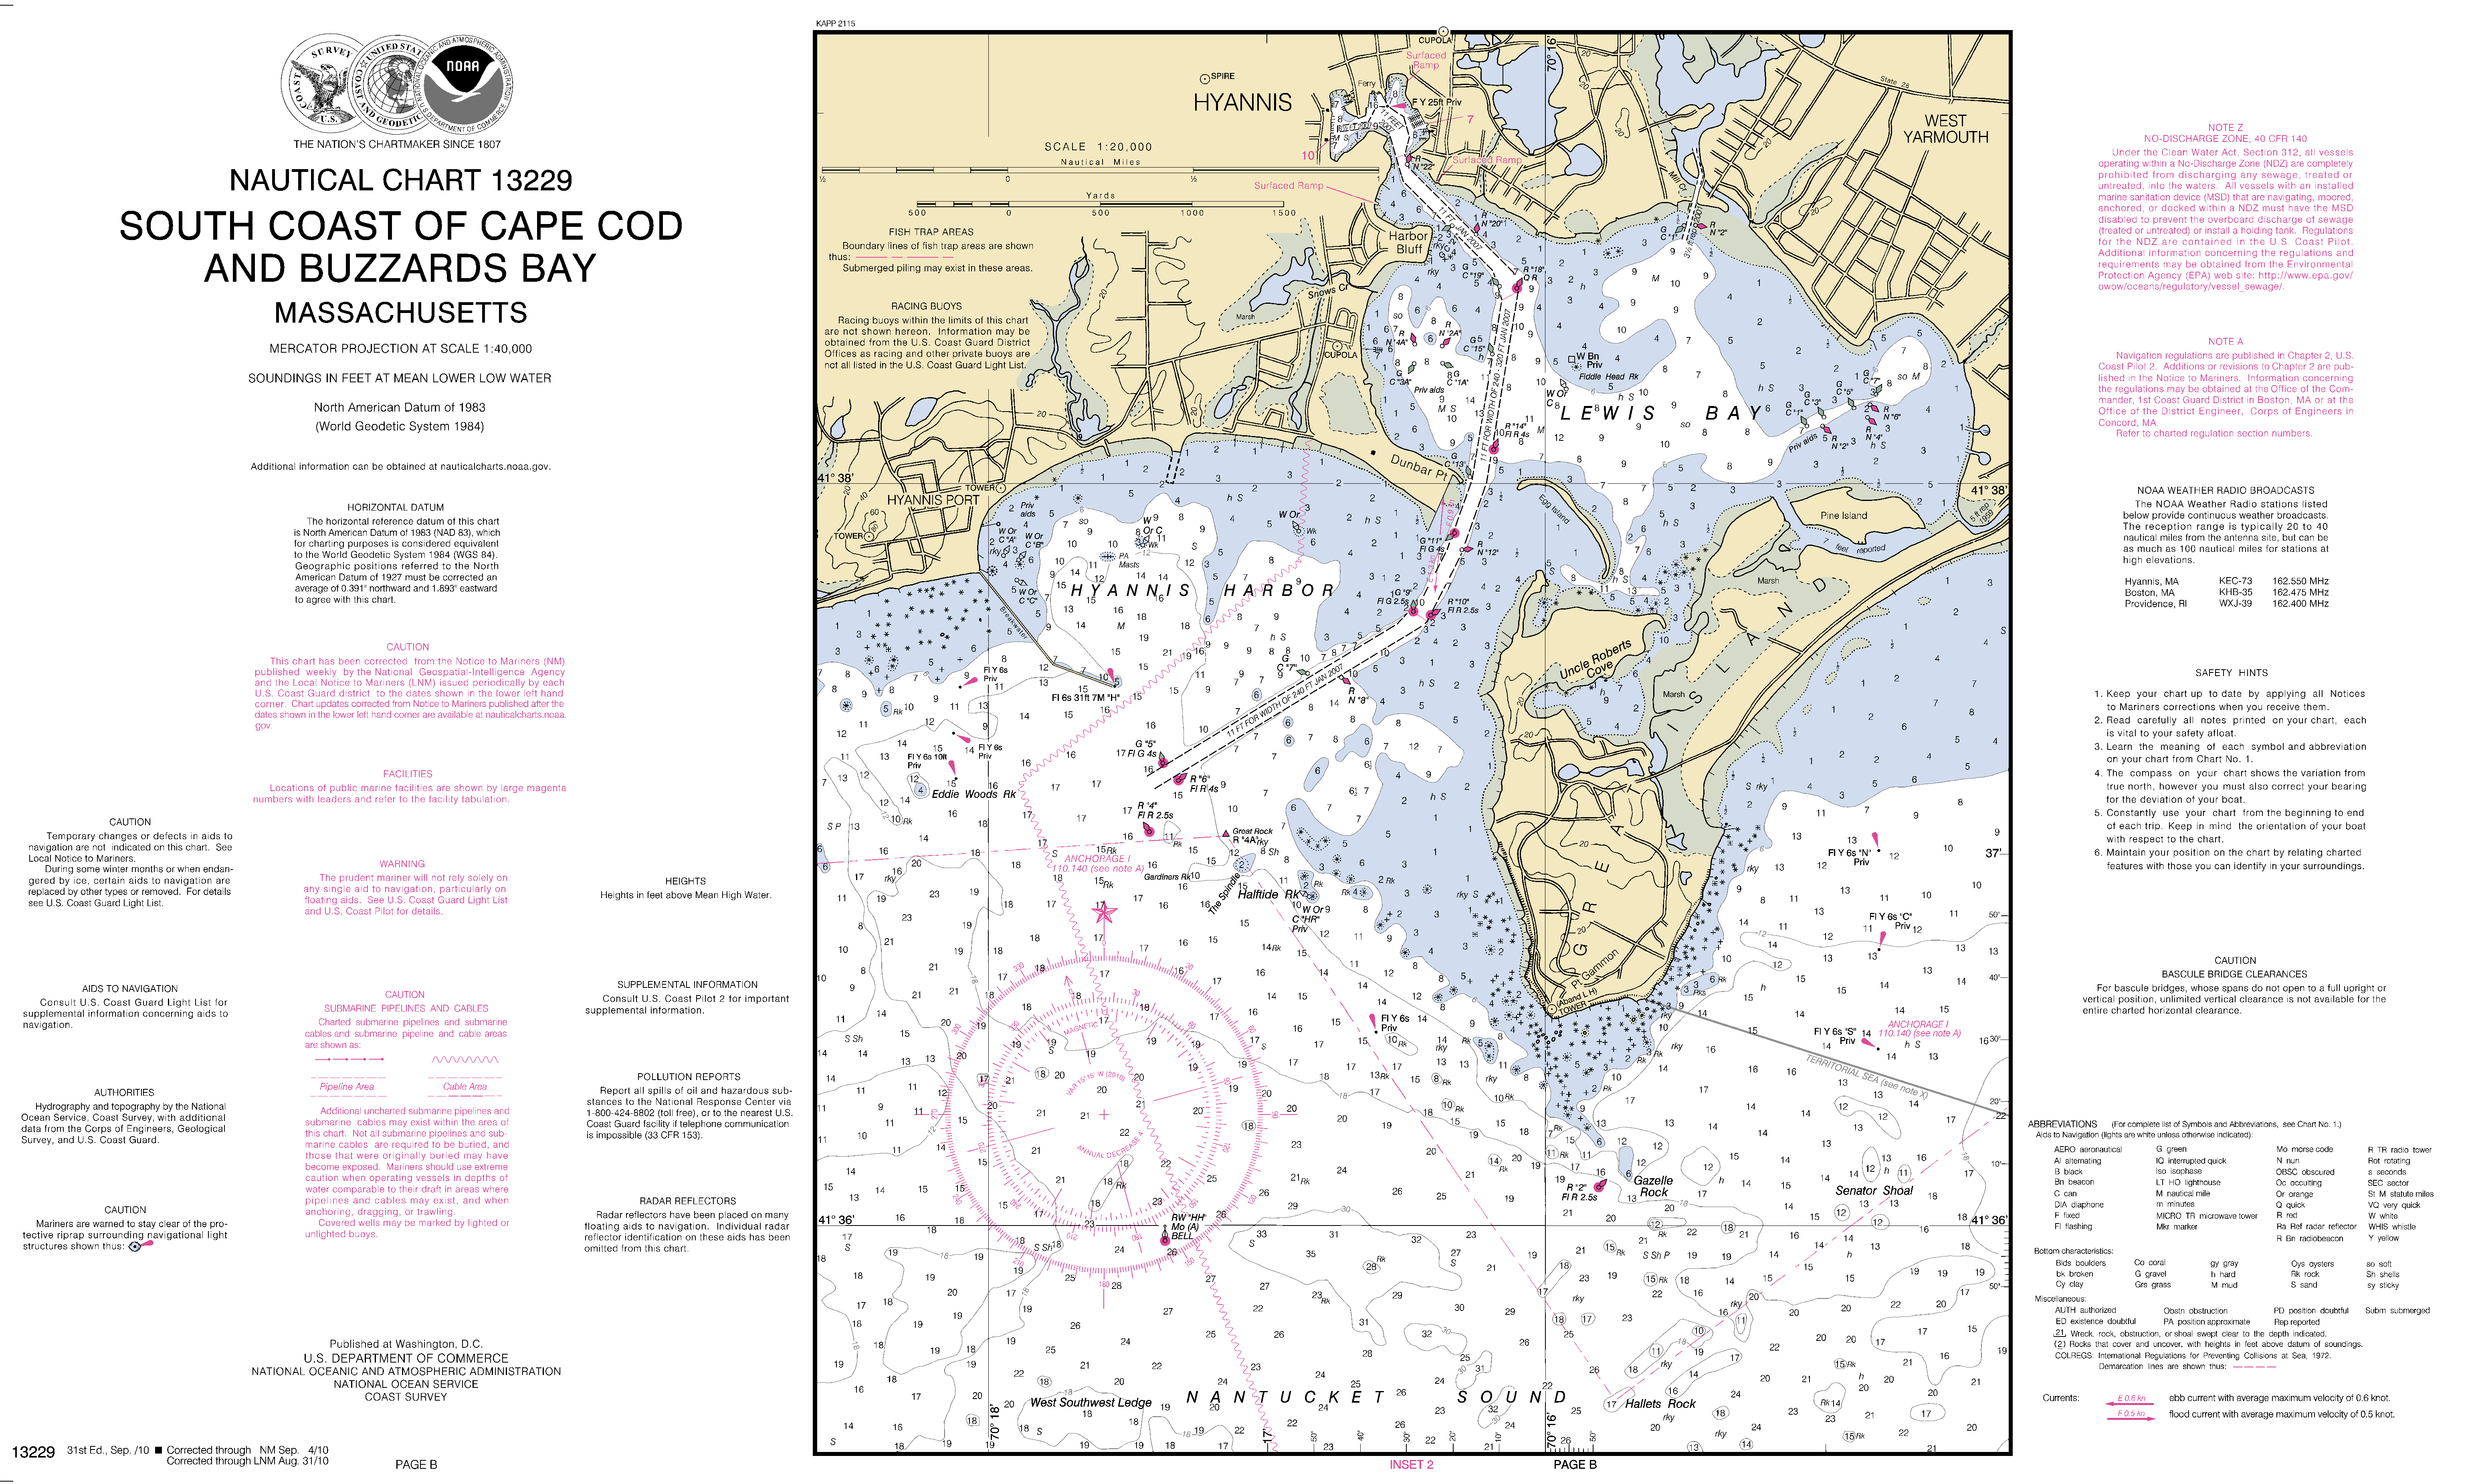 Lewis Bay Hyannis Harbor Ma Inset 2 Nautical Chart